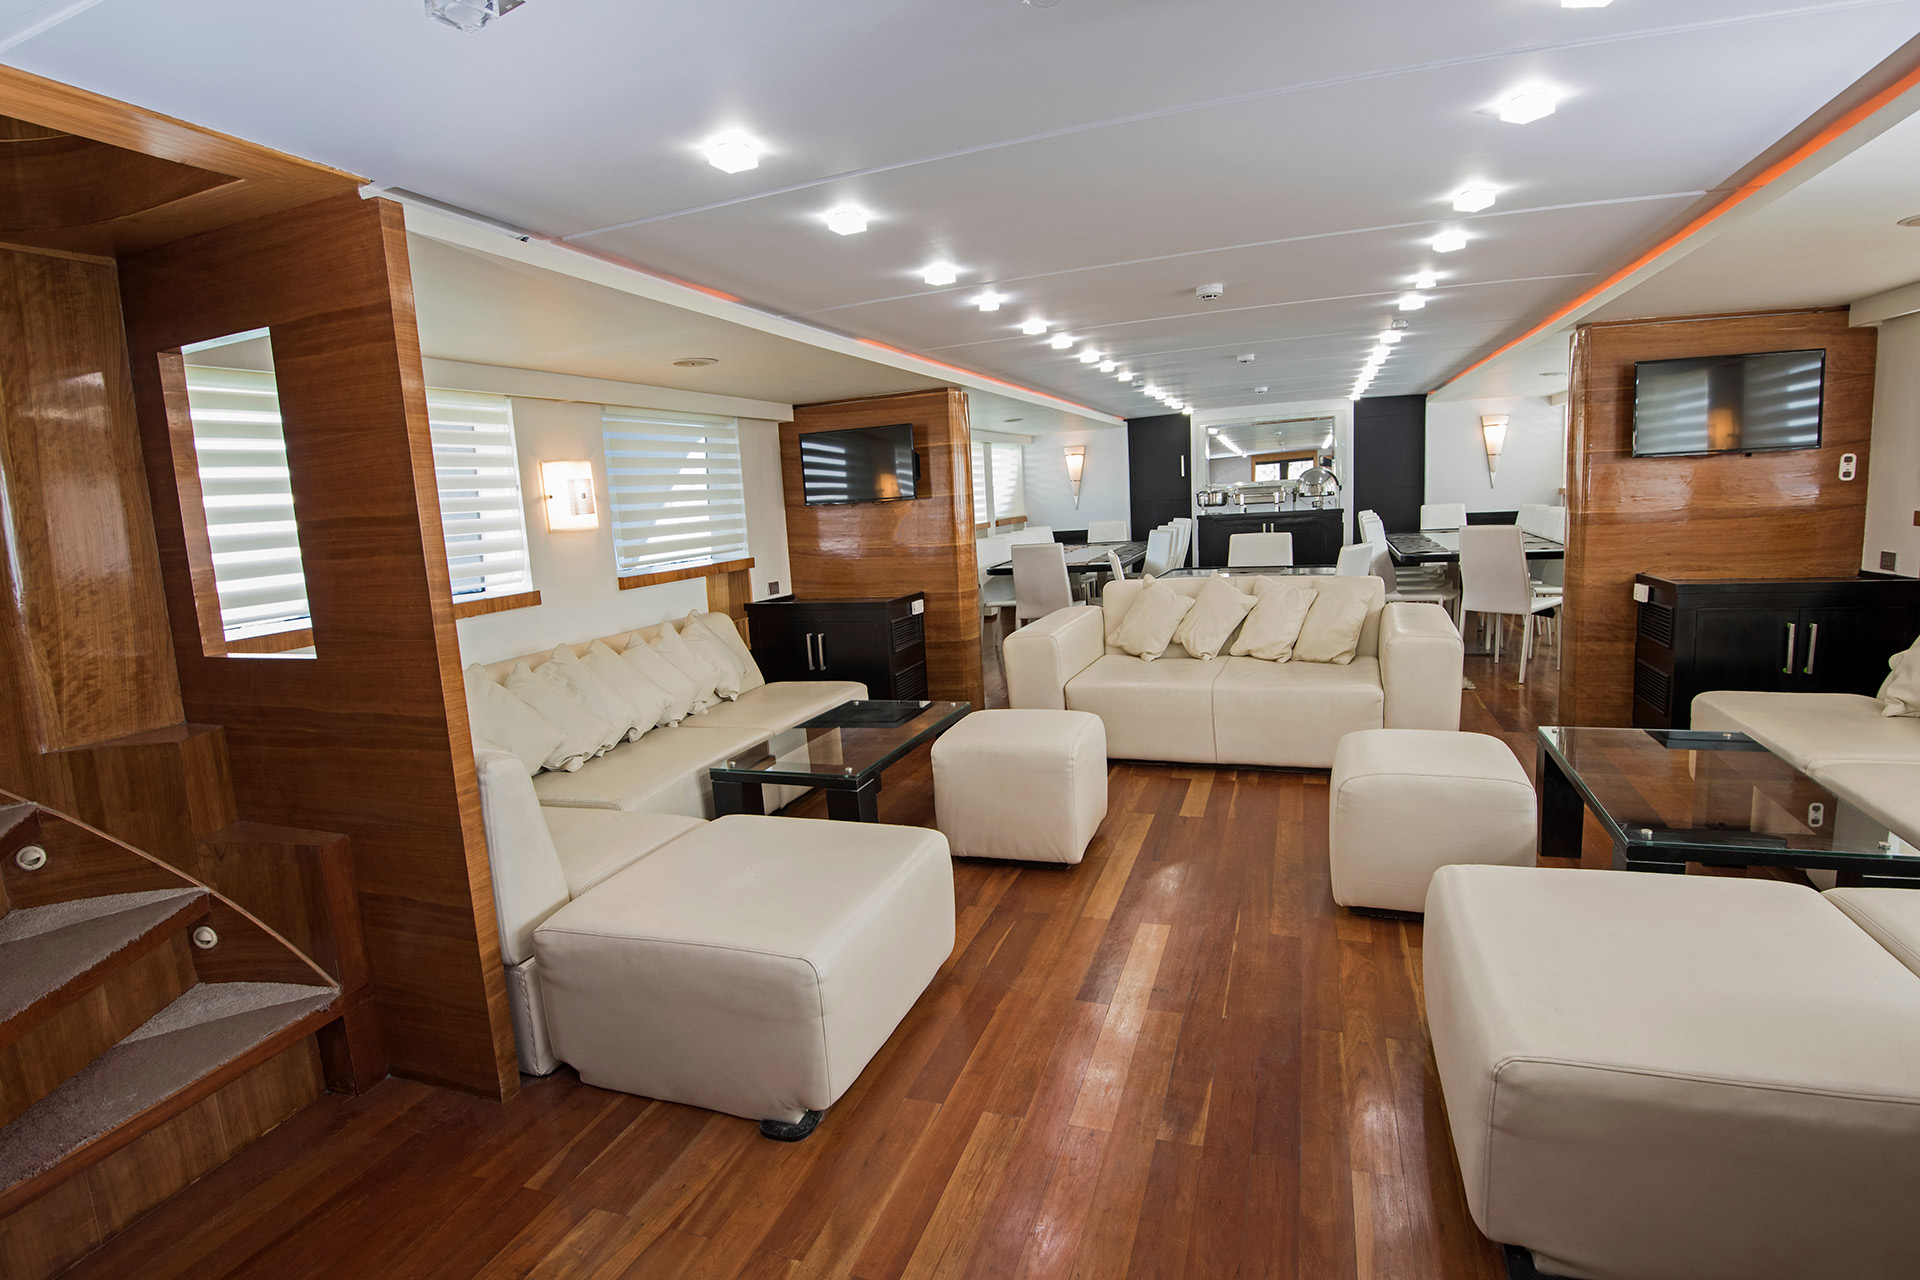 Interiors of ships and yachts, authentic and luxurious habitats